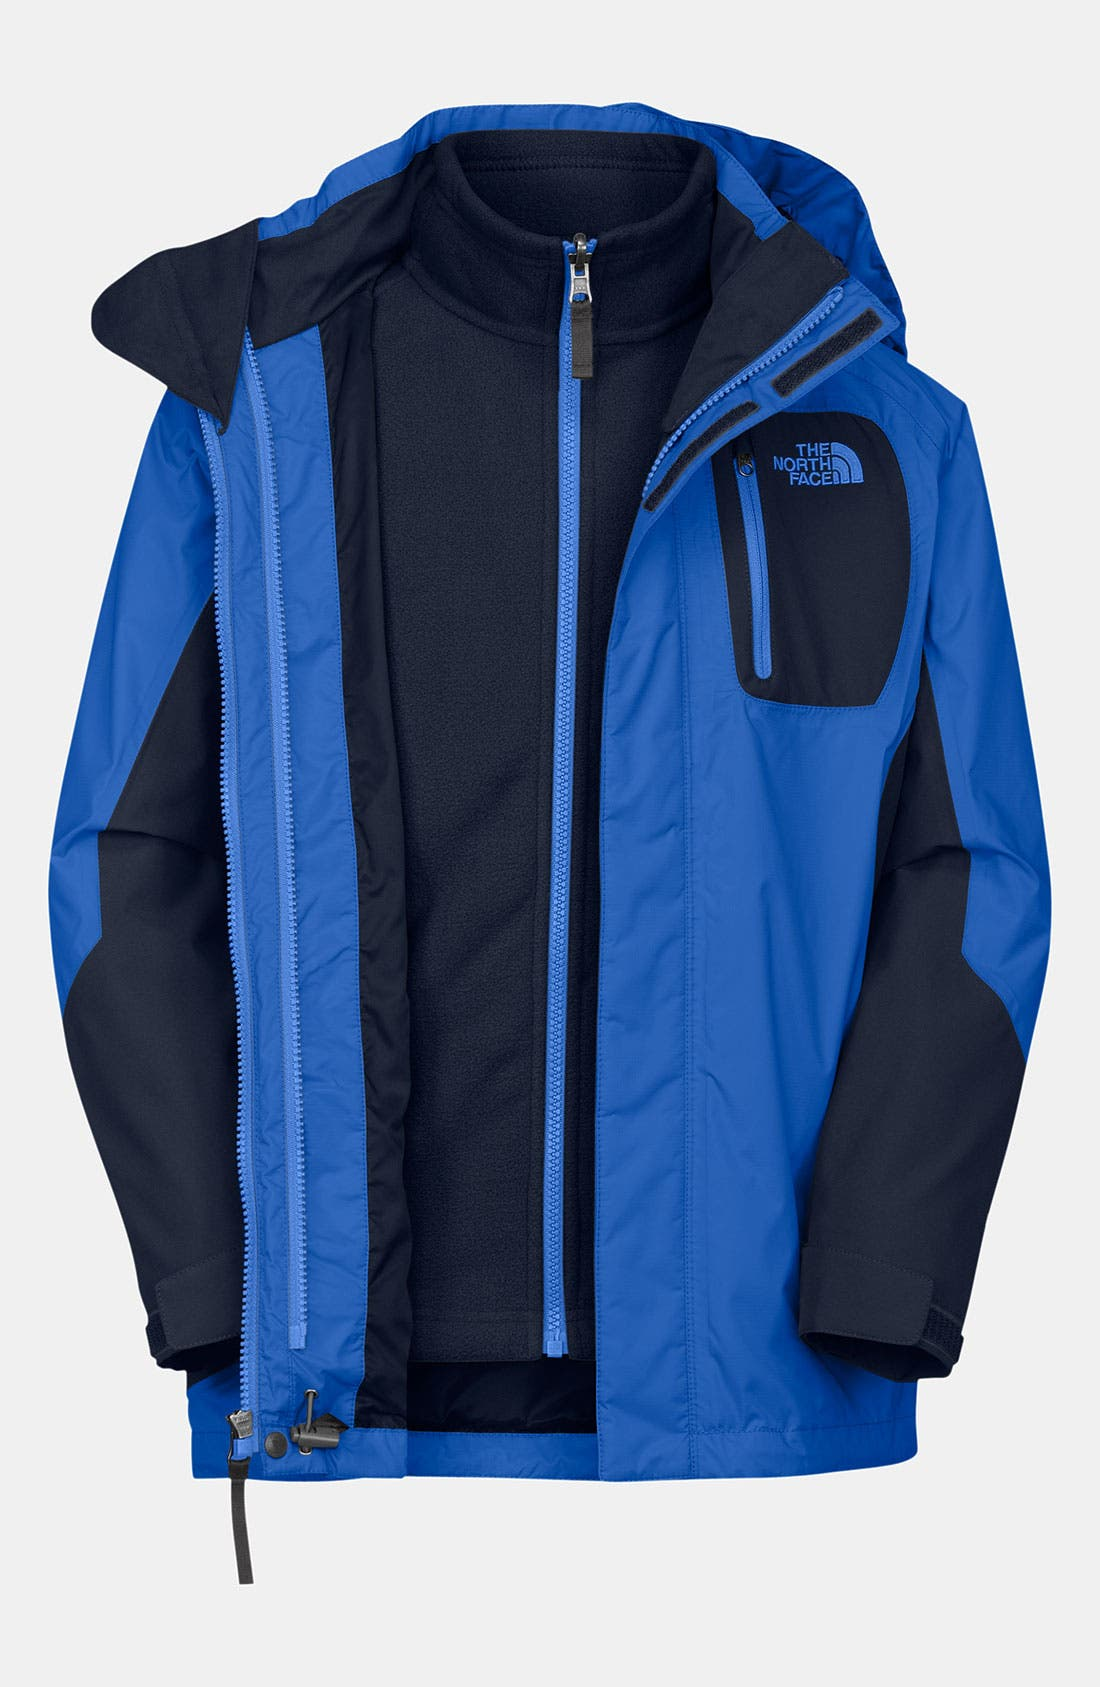 Alternate Image 1 Selected - The North Face 'Atlas' TriClimate® Jacket (Big Boys)